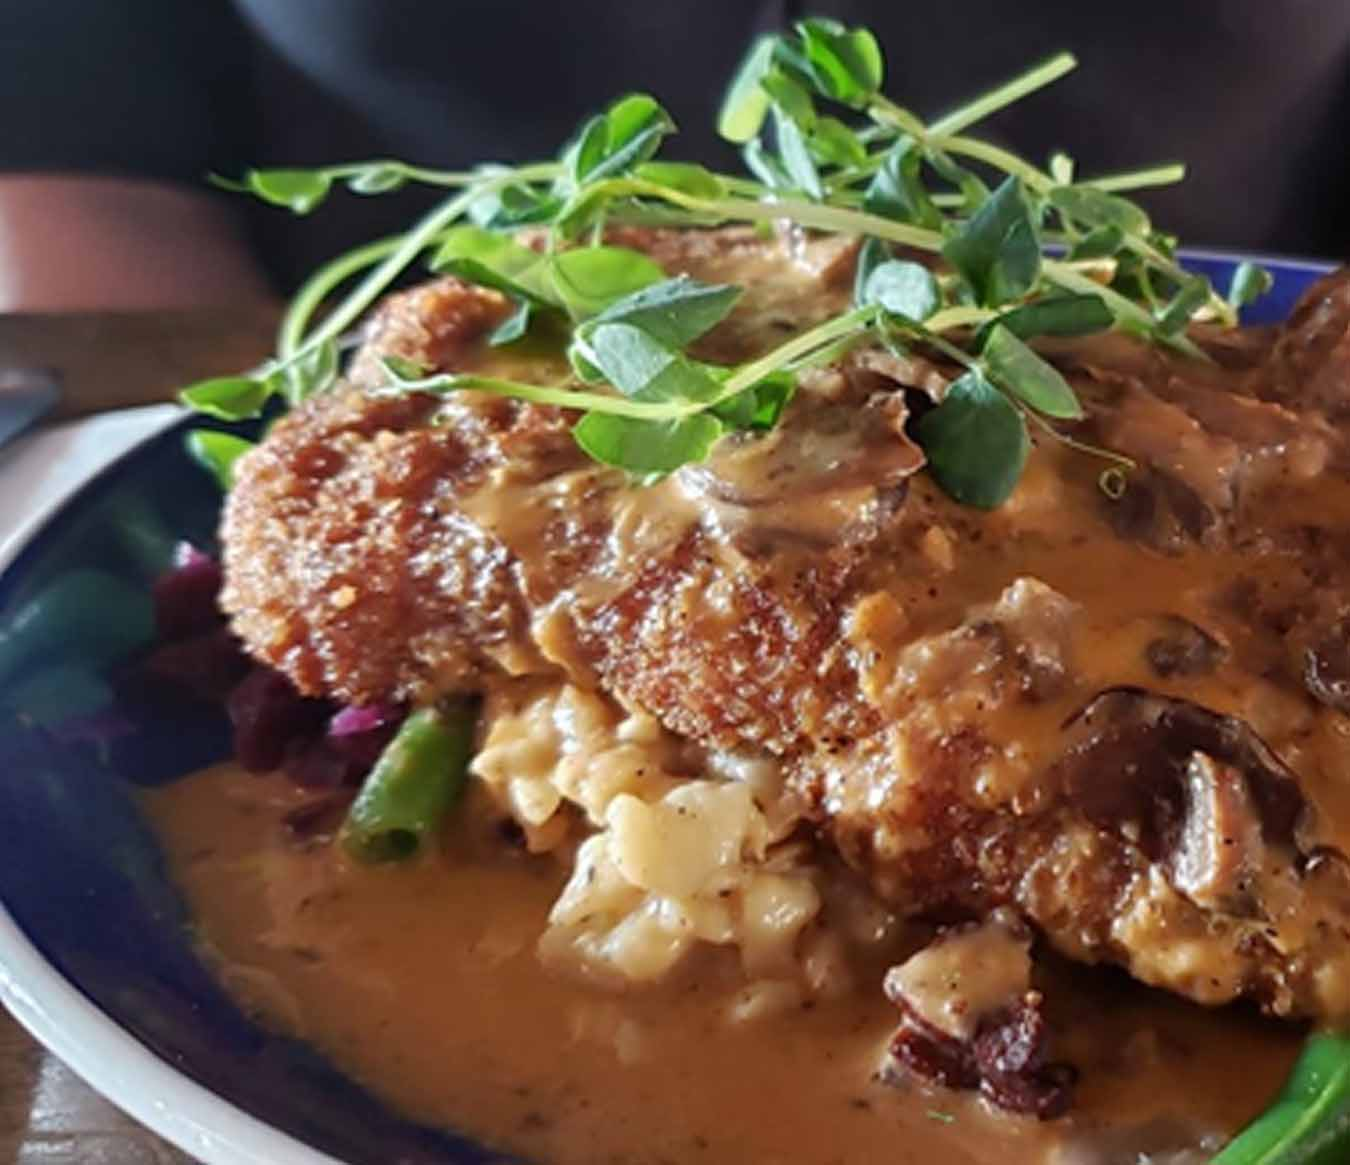 Where to Eat In Ottawa - Central Bierhaus